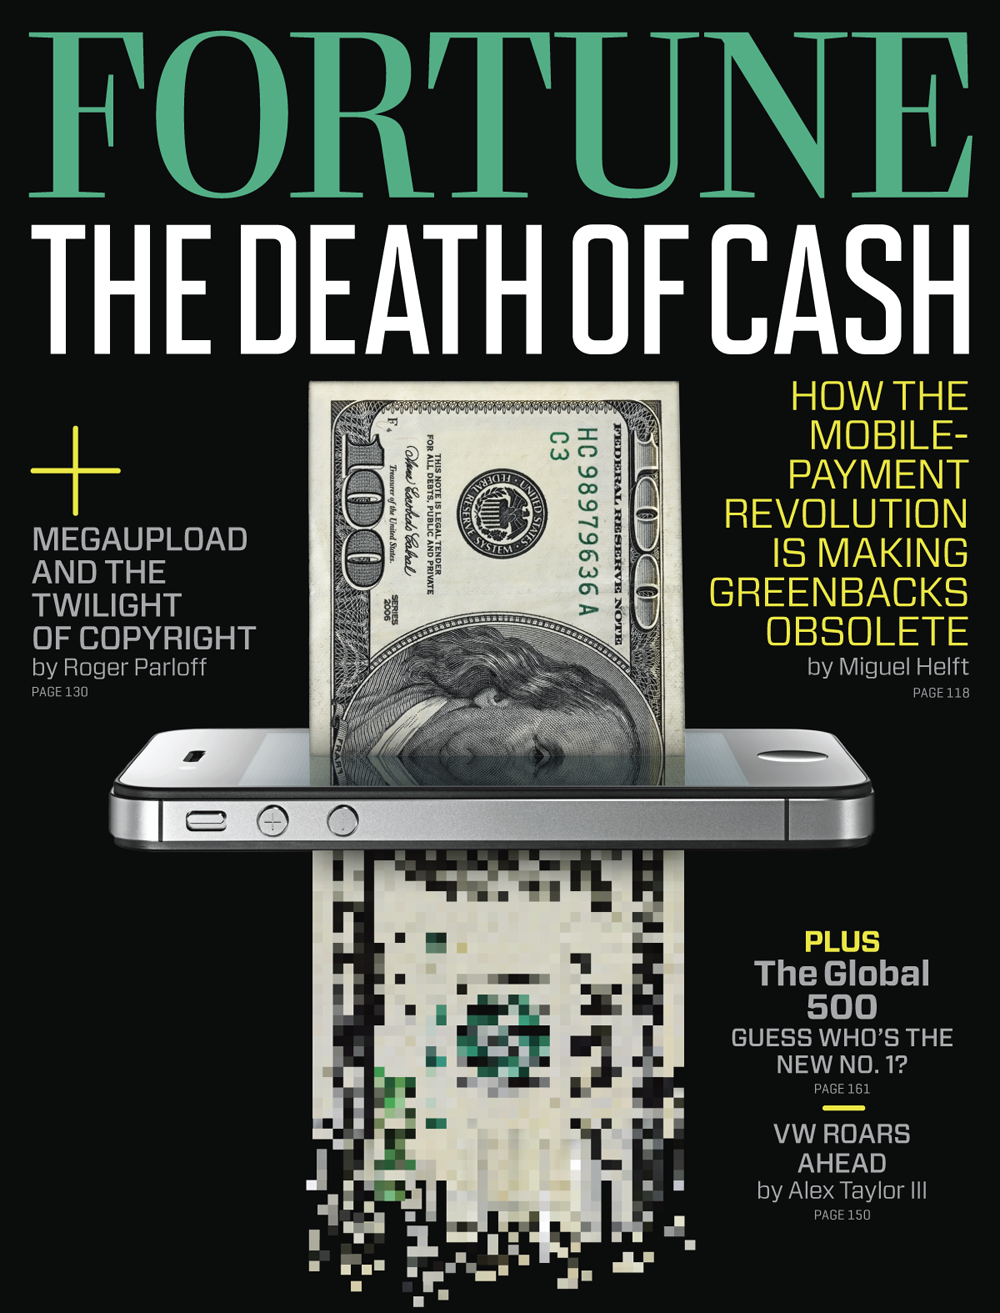 Fortune dives into the death of cash in the latest issue (July 23, 2012), as well as the global Fortune 500 list. Featuring work from Thomas Hannich, ILoveDust, Marta Cerda Alimbau, Vault 49, and many more.